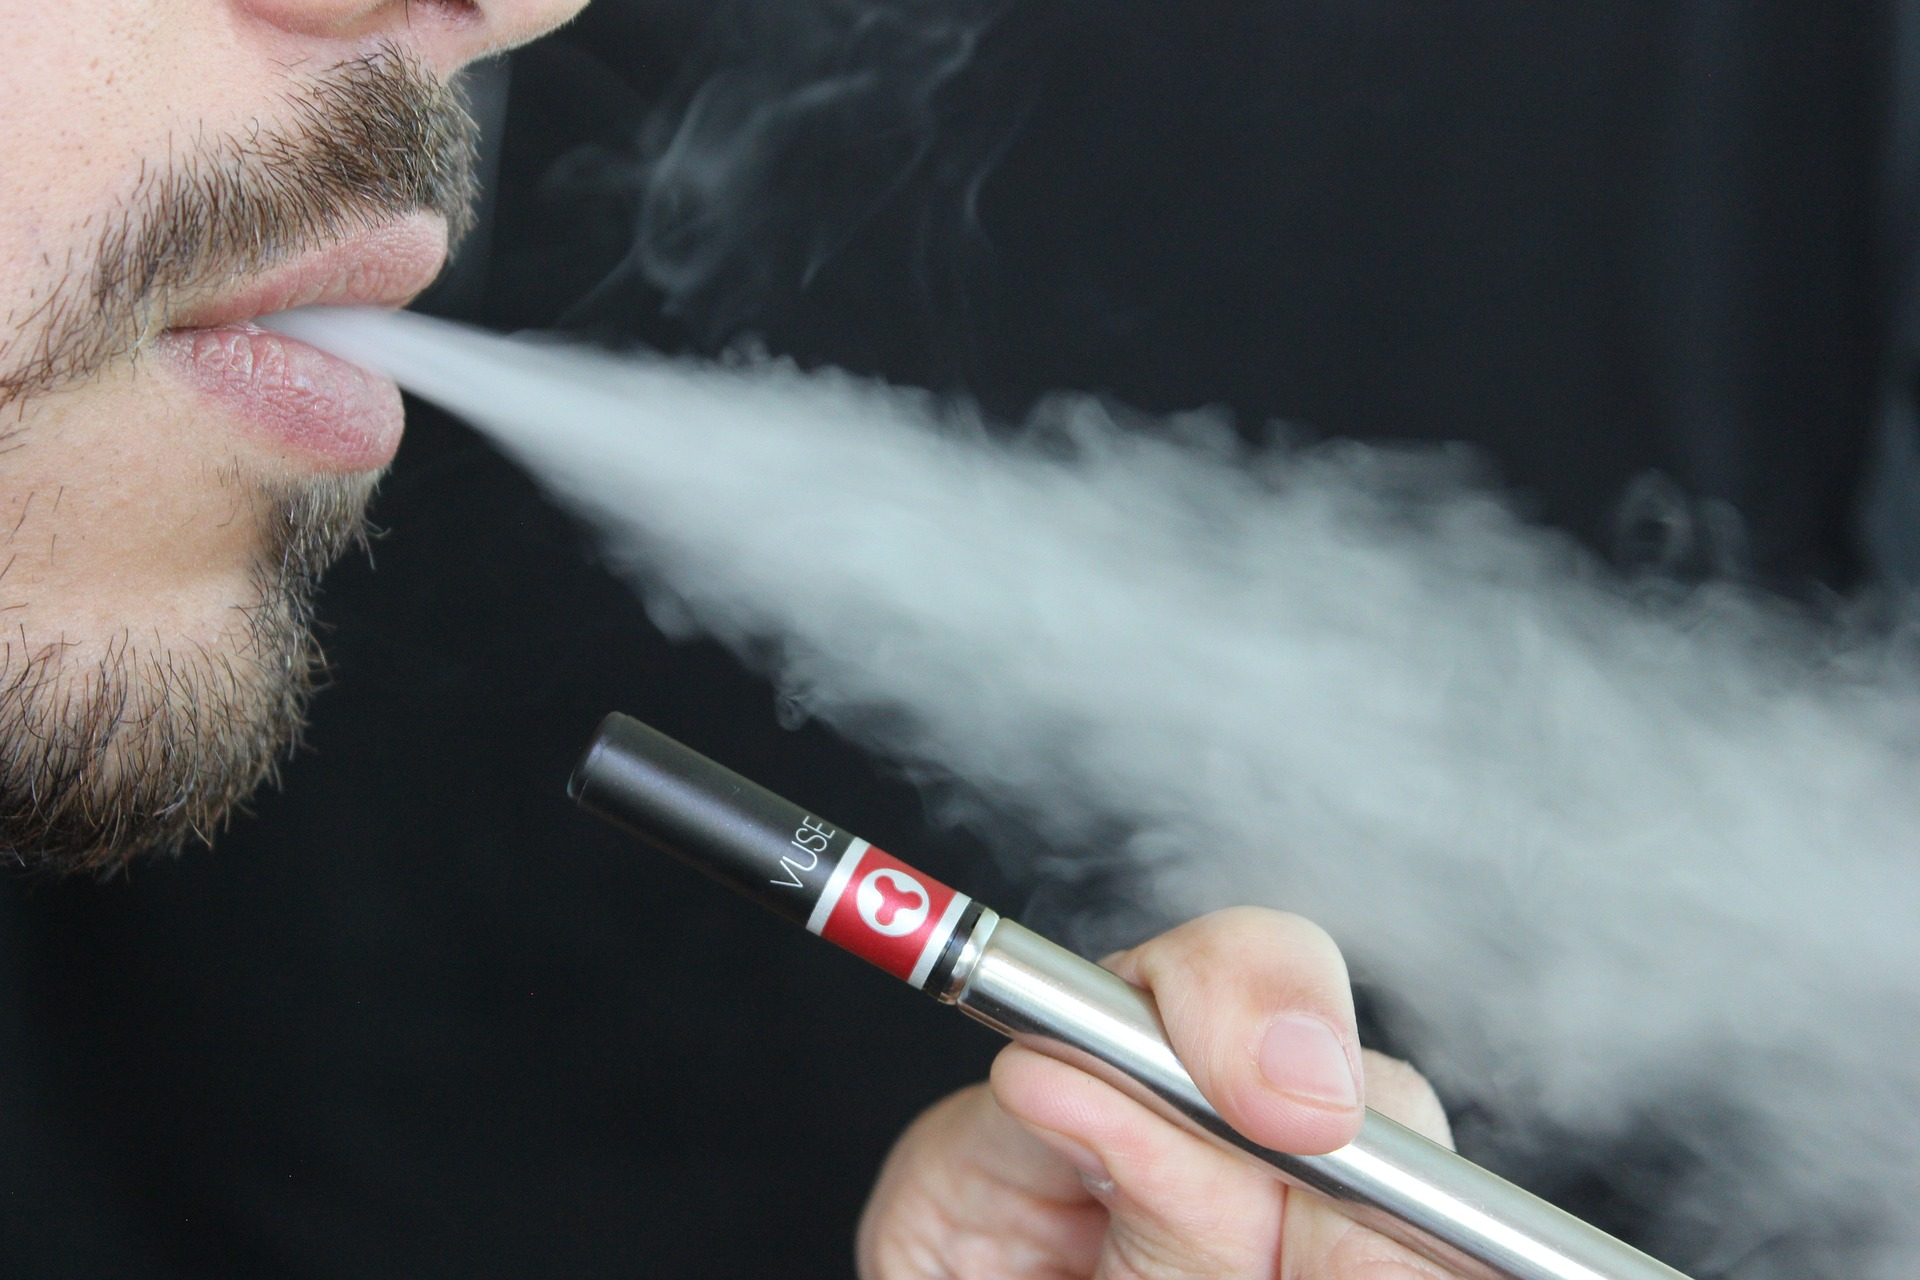 E-cigarettes: Do they help you quit?